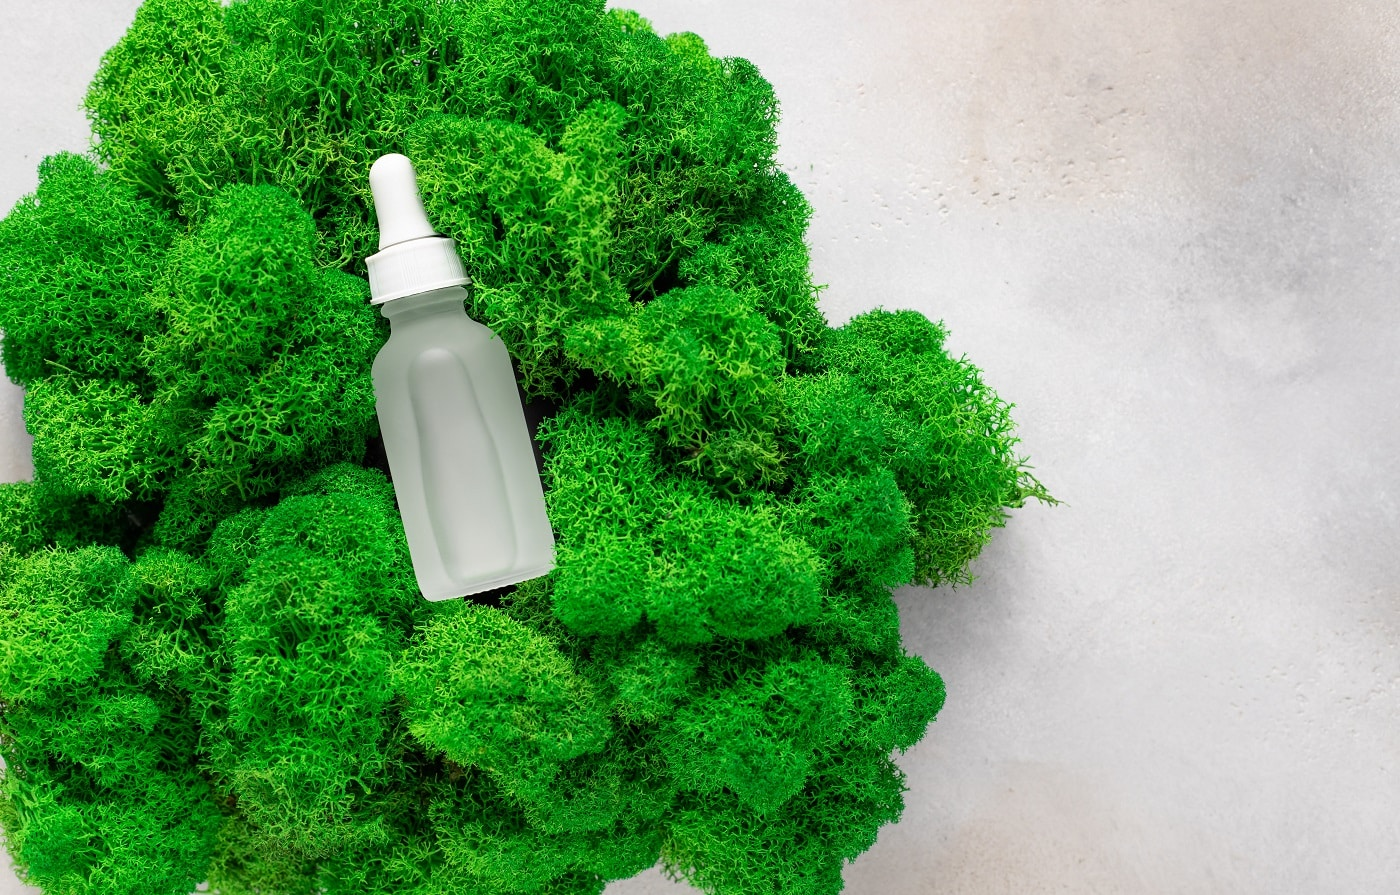 Anti-aging serum in matte bottle on green moss. Beauty and spa treatment concept. flat lay. space for text